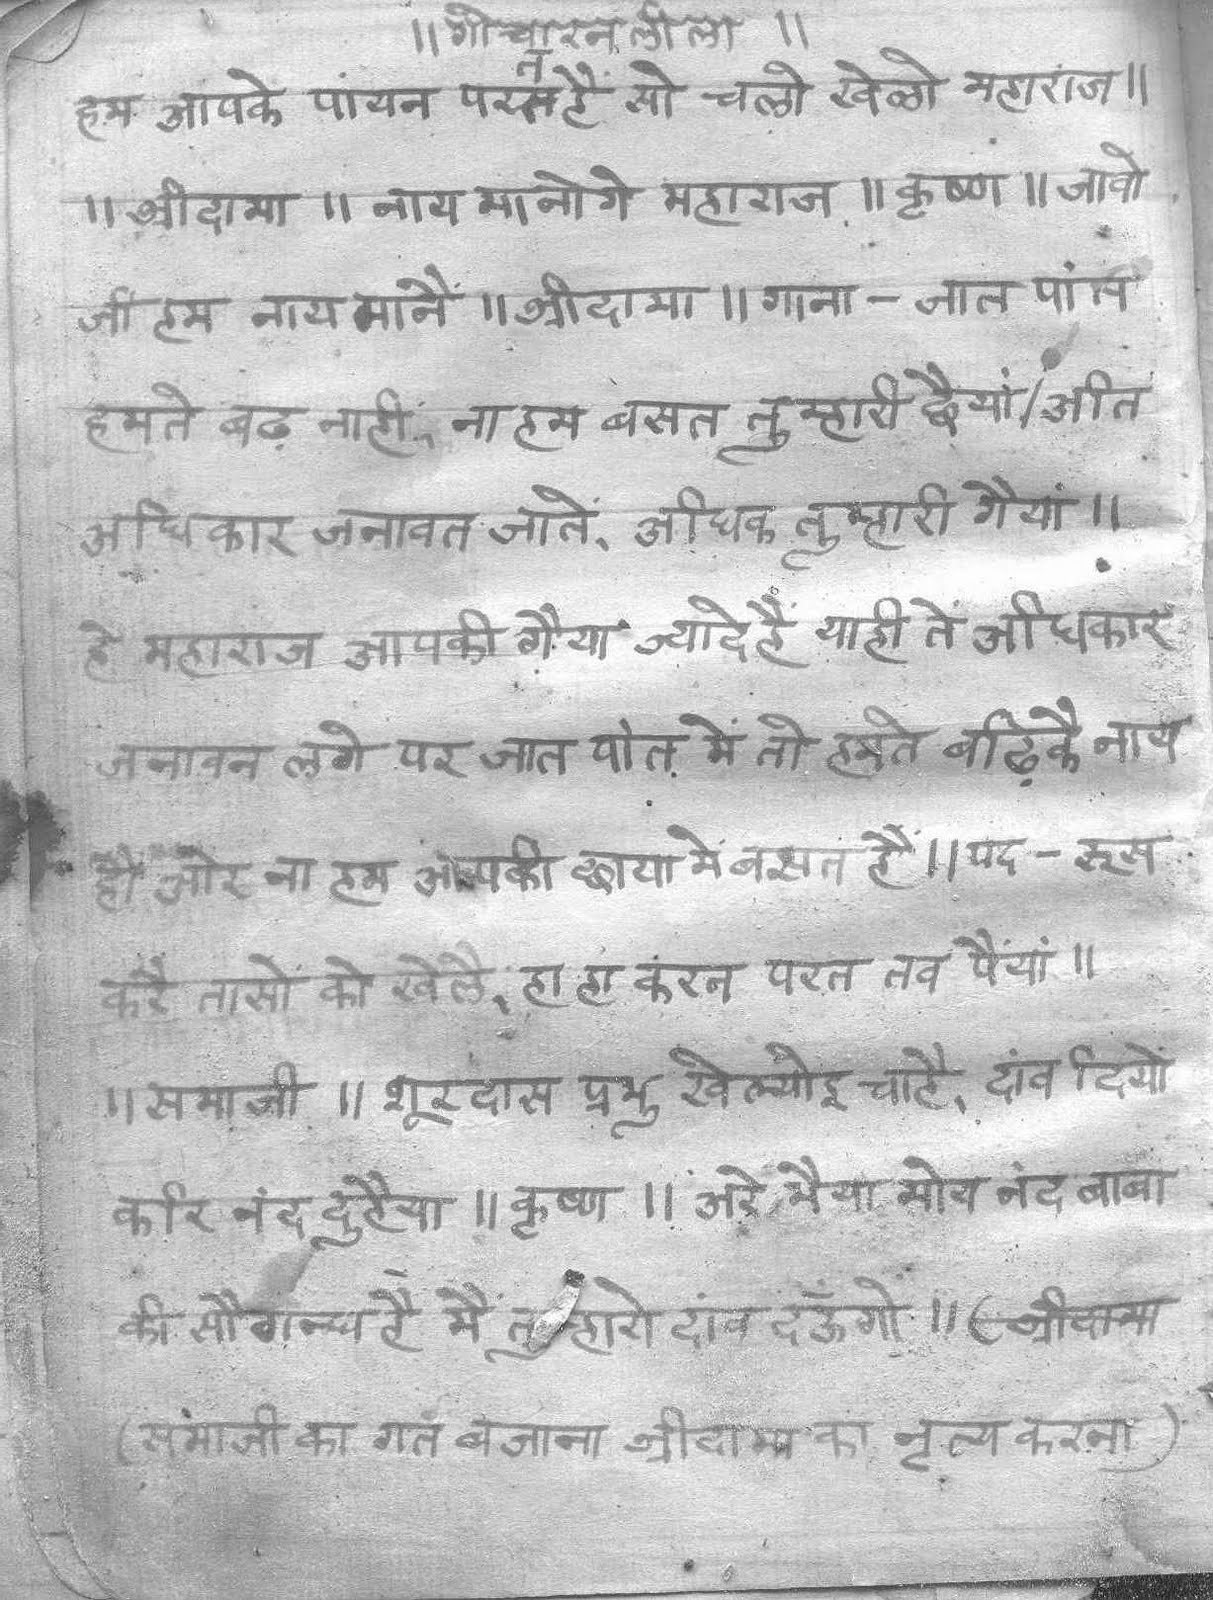 ped ki atmakatha sanskrit essay Ped ki atmakatha - english - hindi translation and examples ped ki atmakatha about 100 words in hindi, ped ki हिंदी में लगभग 100 शब्दों atmakatha, english us, hindi, translation, human translation, automatic.